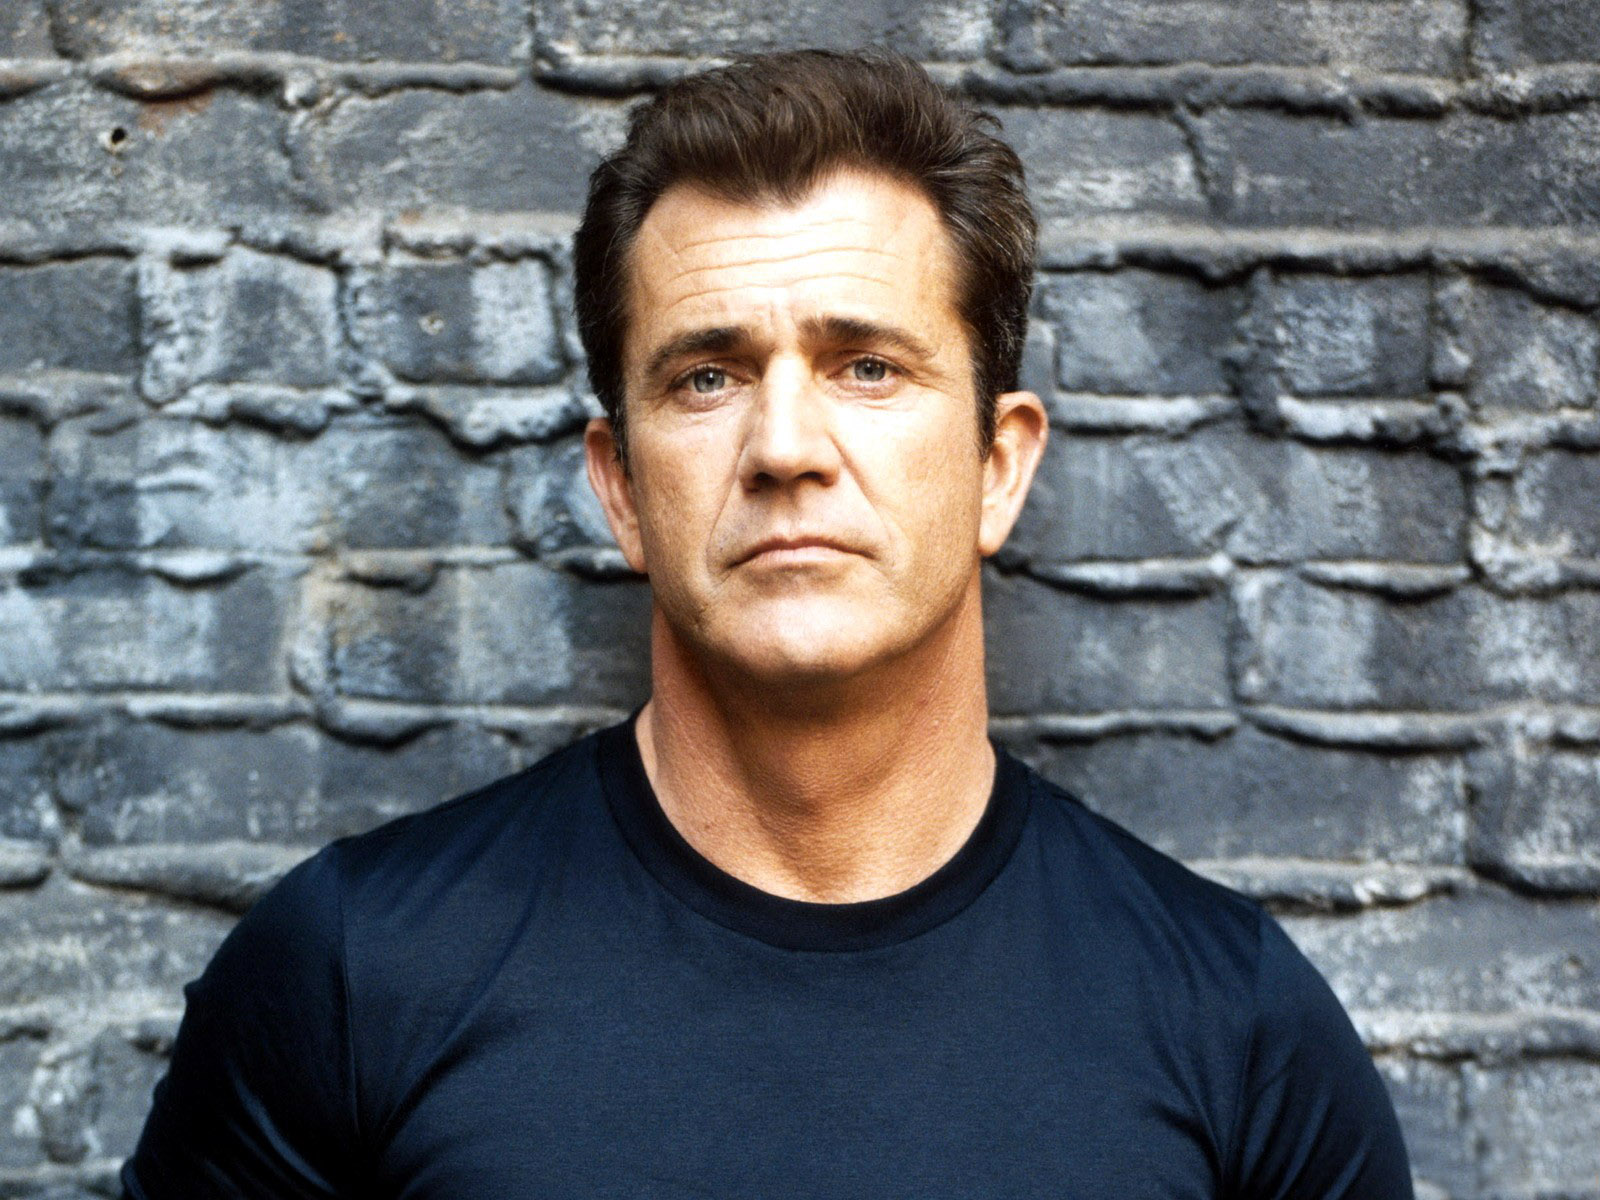 Mel Gibson Wallpaper and Background Image 1600x1200 ID529487 1600x1200